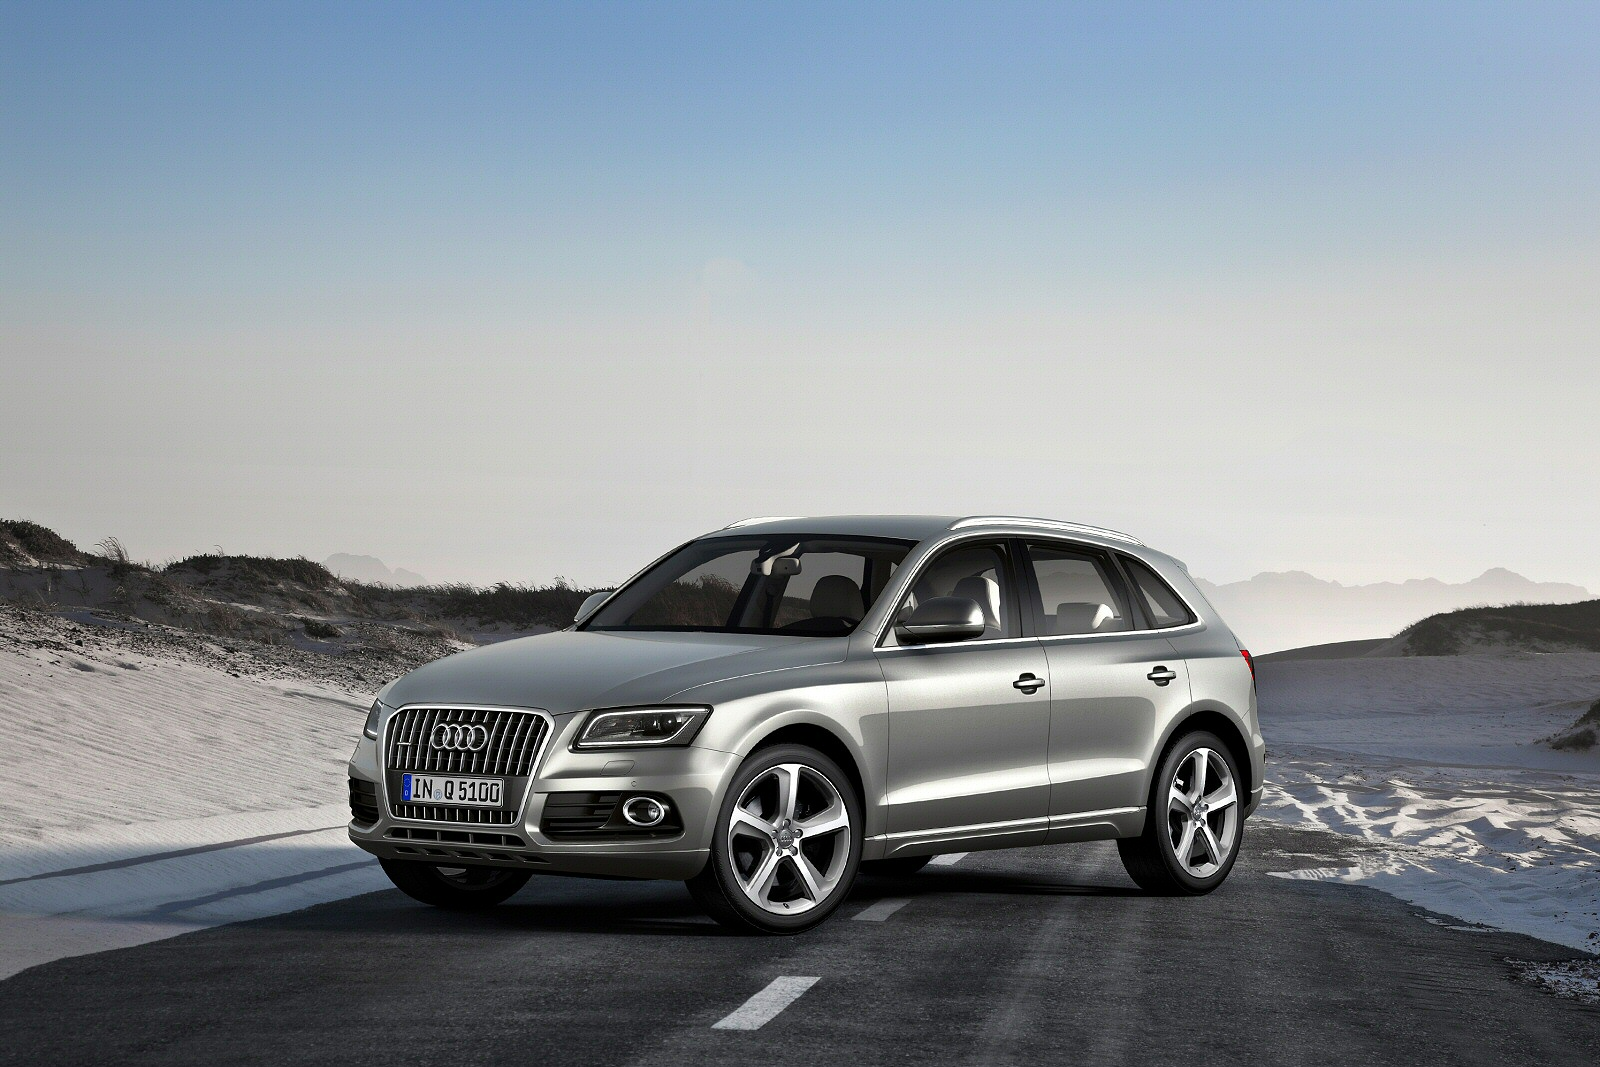 new audi q5 2 0 tdi quattro s line 5dr s tronic diesel estate for sale hereford audi. Black Bedroom Furniture Sets. Home Design Ideas